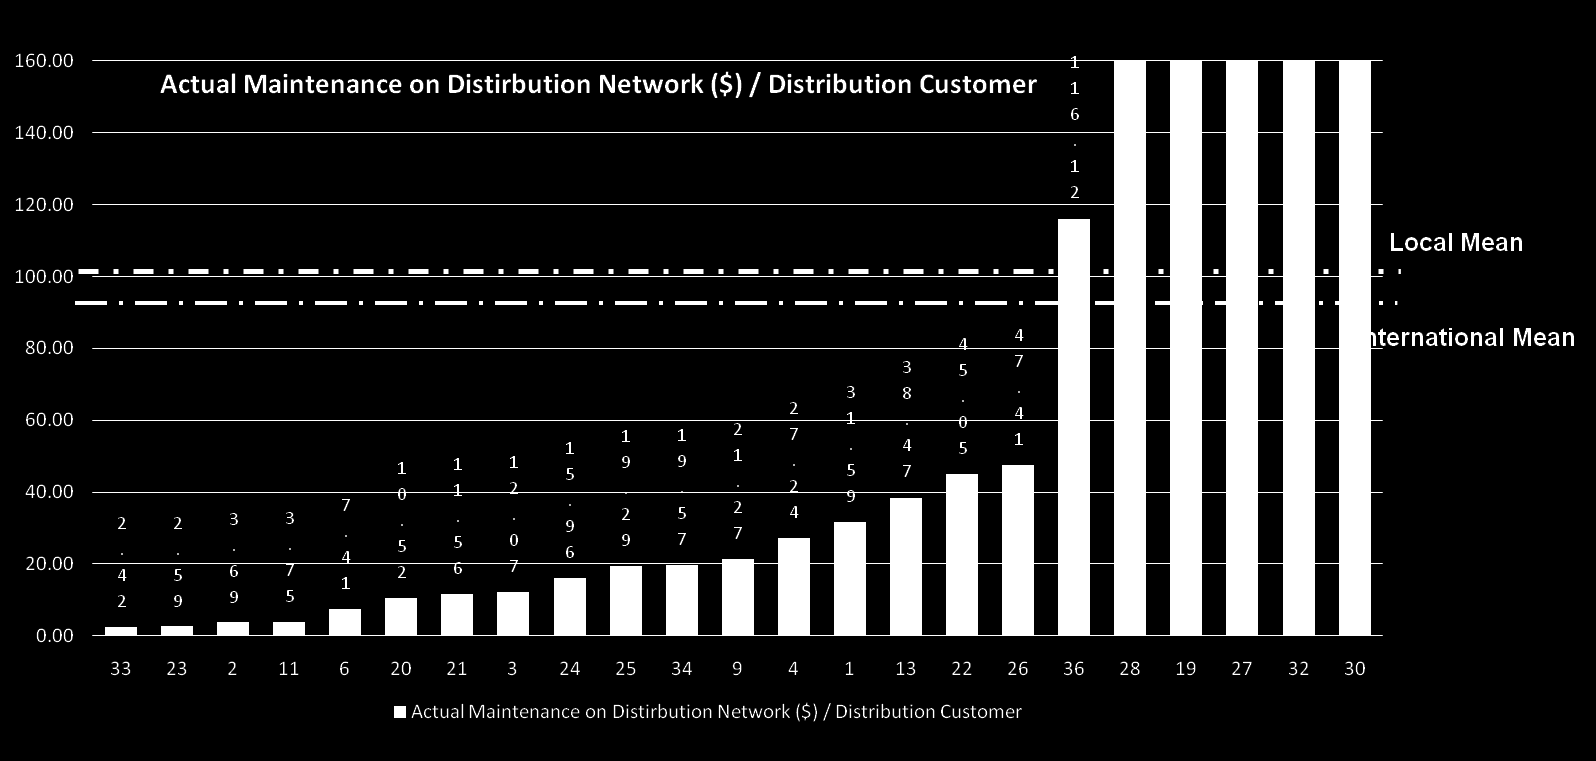 Figure 1 Total Maintenance Spend on Distribution Network per MWh Preliminary Analysis Locally the actual total maintenance spend per MWh on distribution network is lower than the international mean.